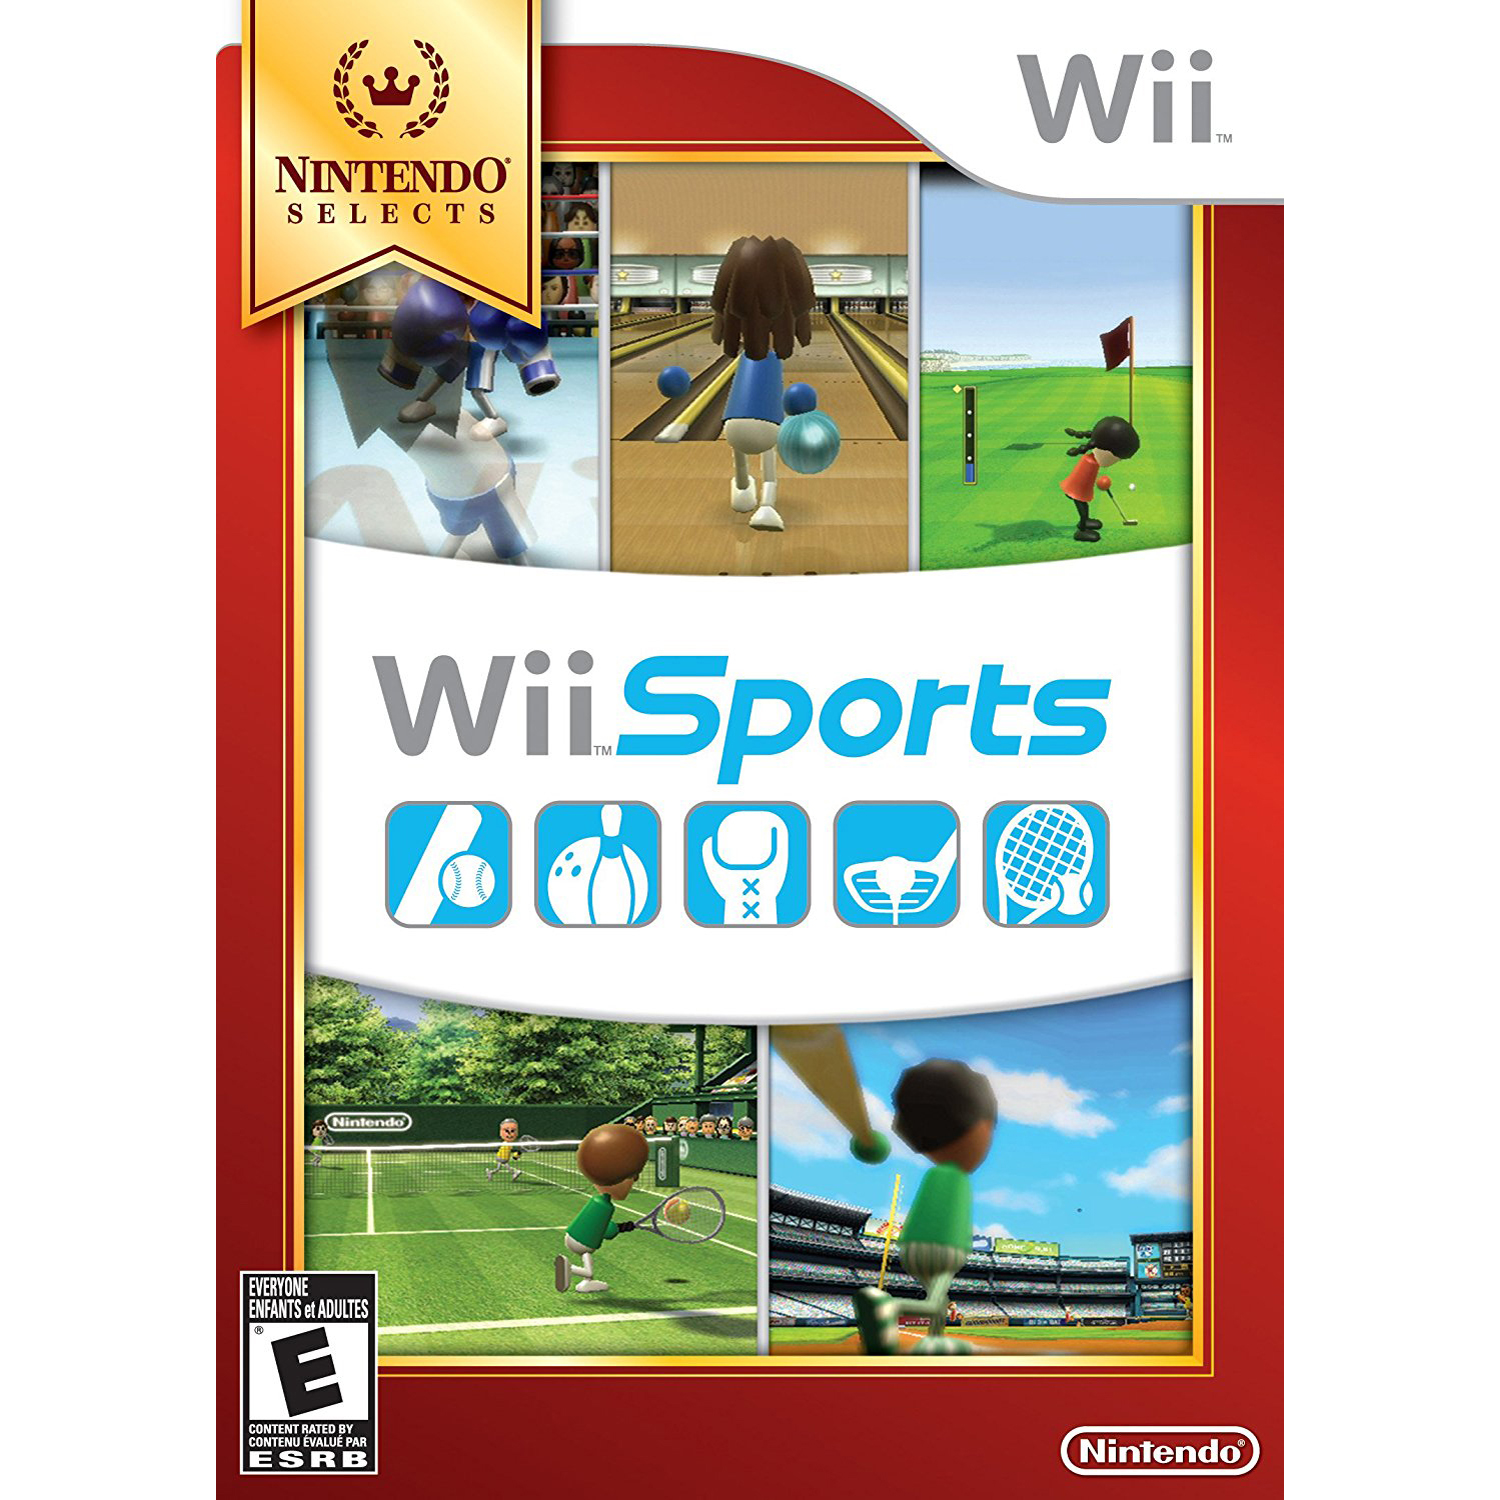 Wii Sports Club - Bowling, Nintendo, WIIU, [Digital Download], 0004549666025